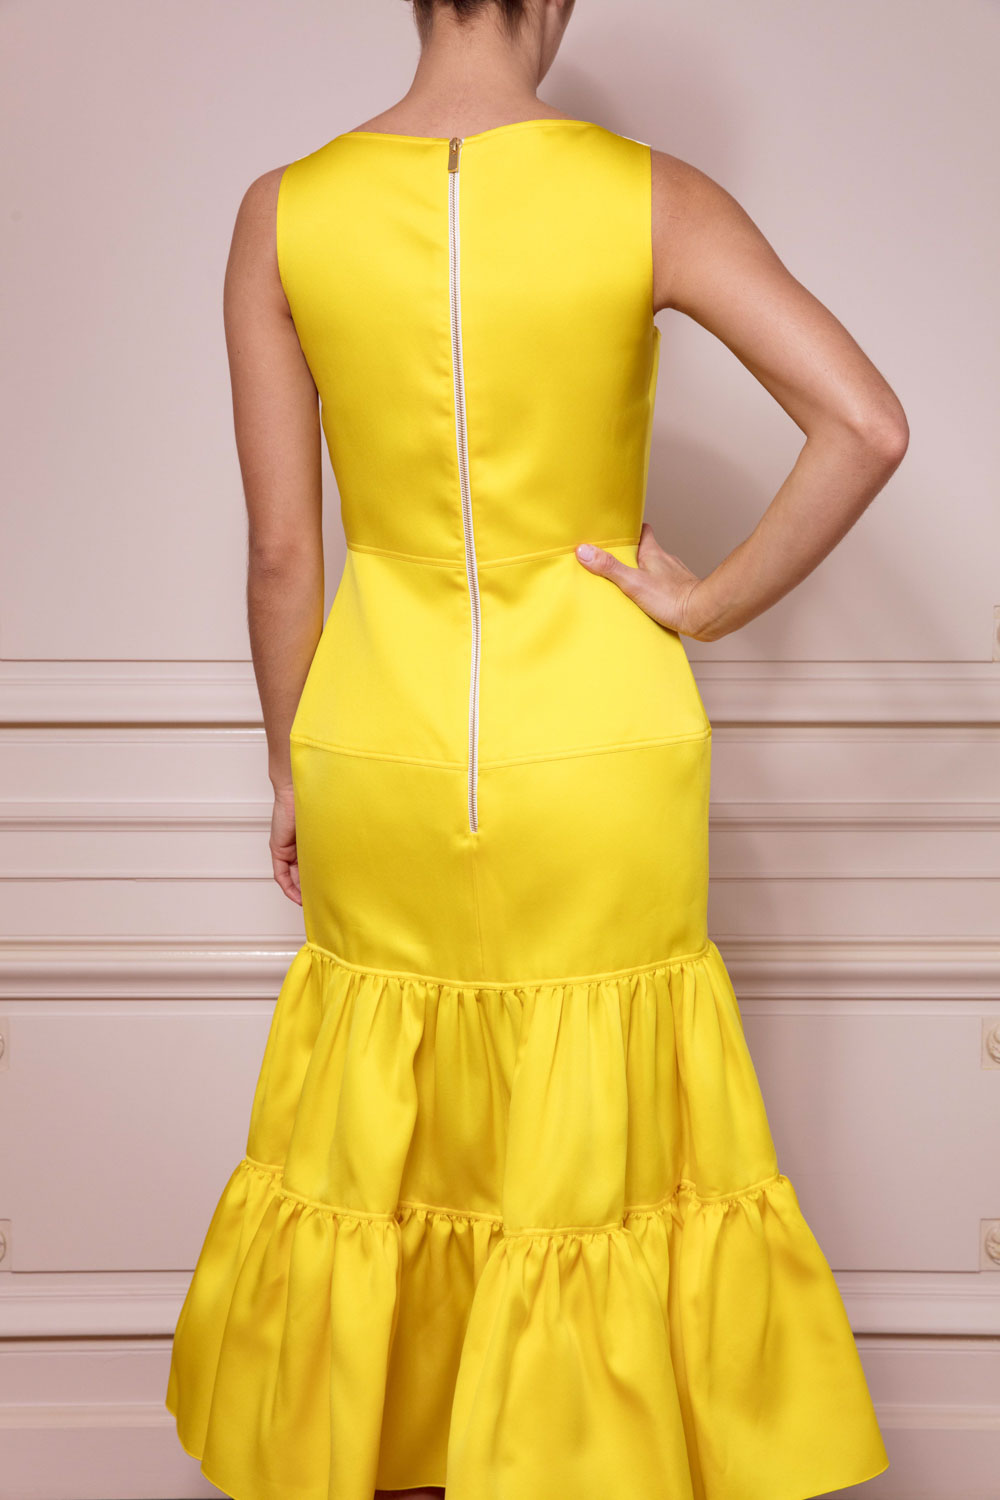 Tiered and ruched midi dress in canary yellow satin